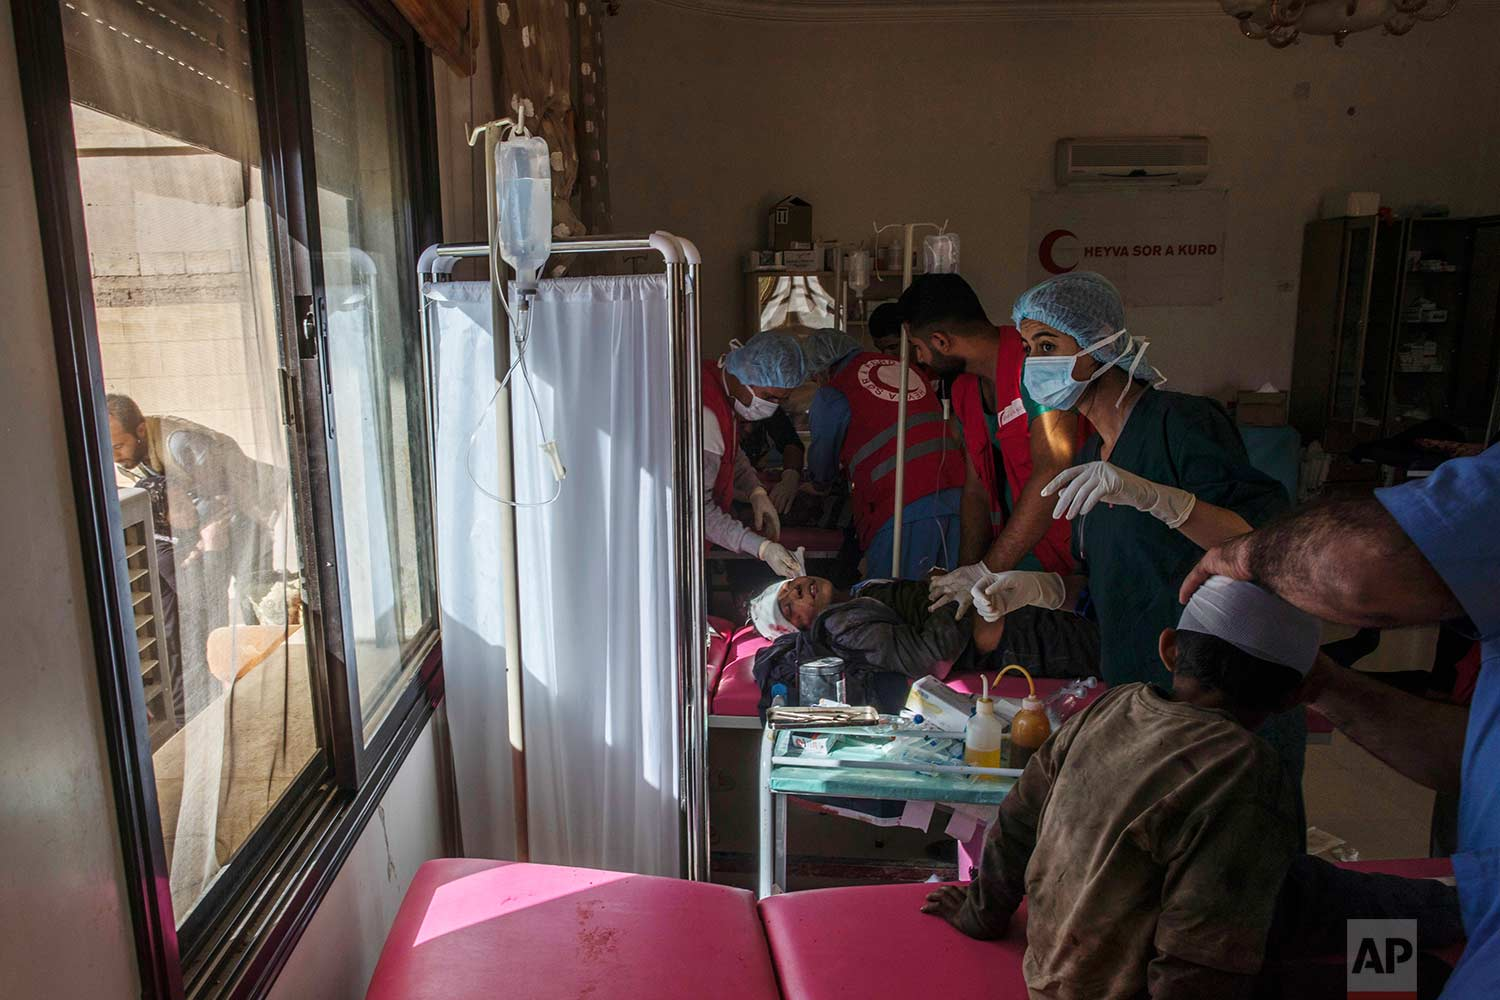 Red Crescent doctors treat three children injured in a motorcycle accident as a mother of one child weeps outside, in Raqqa, Syria, on Thursday, Oct. 19, 2017. (AP Photo/Gabriel Chaim)